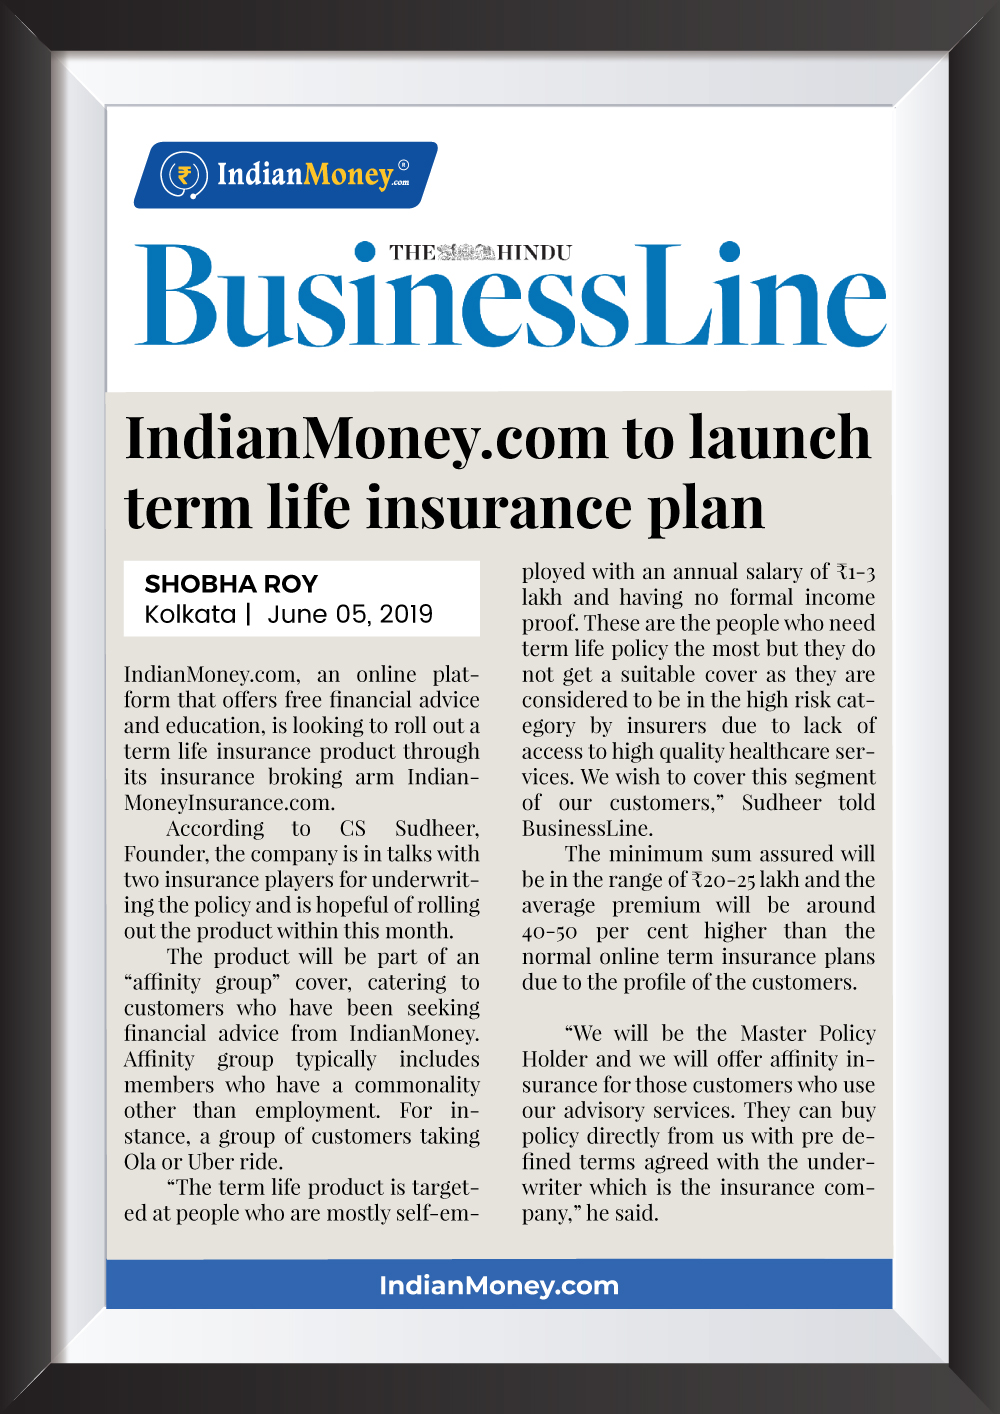 IndianMoney.com to launch term life insurance plan